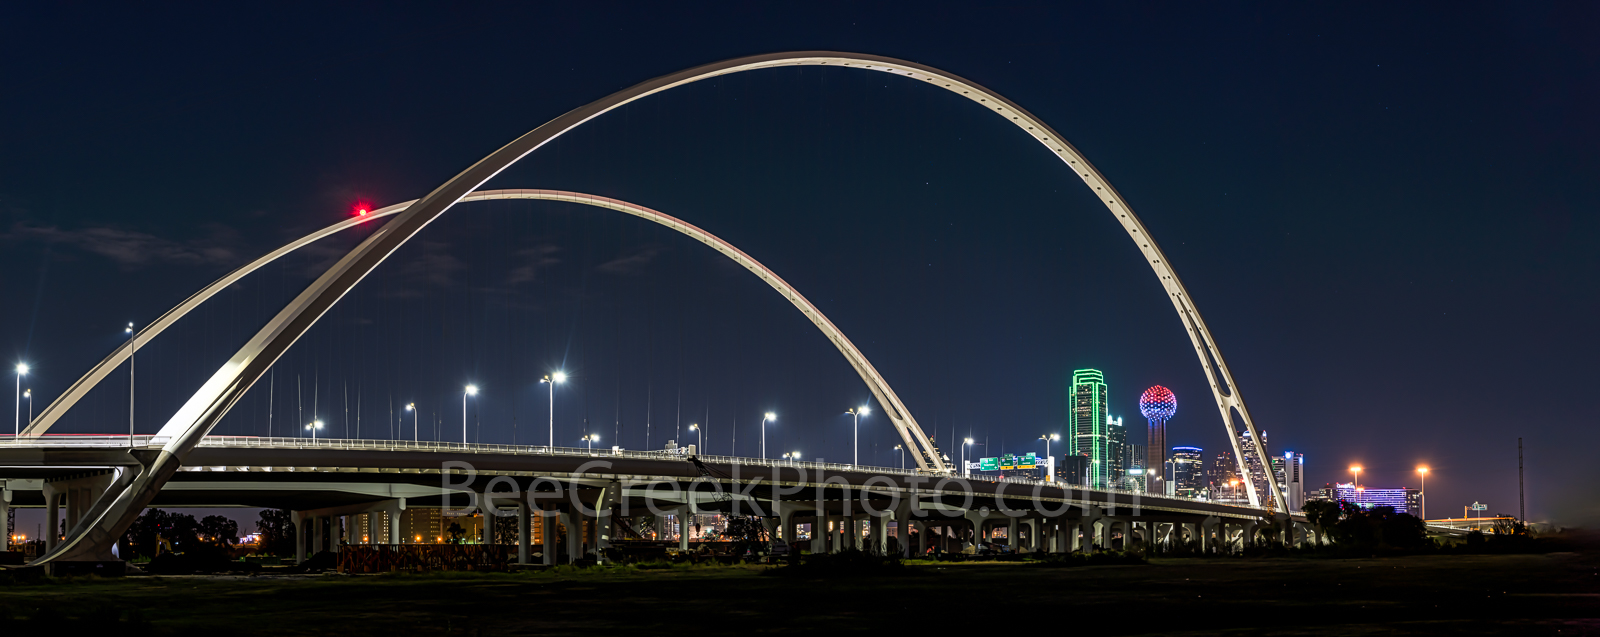 Dallas, skyline, cityscape, Margaret McDermott Bridge, night, downtown, dark, steel bridge, suspended, two arches, Trinity River, I30, Trinity project, Santiago Calatrava, pedestrian, bike path, park,, photo